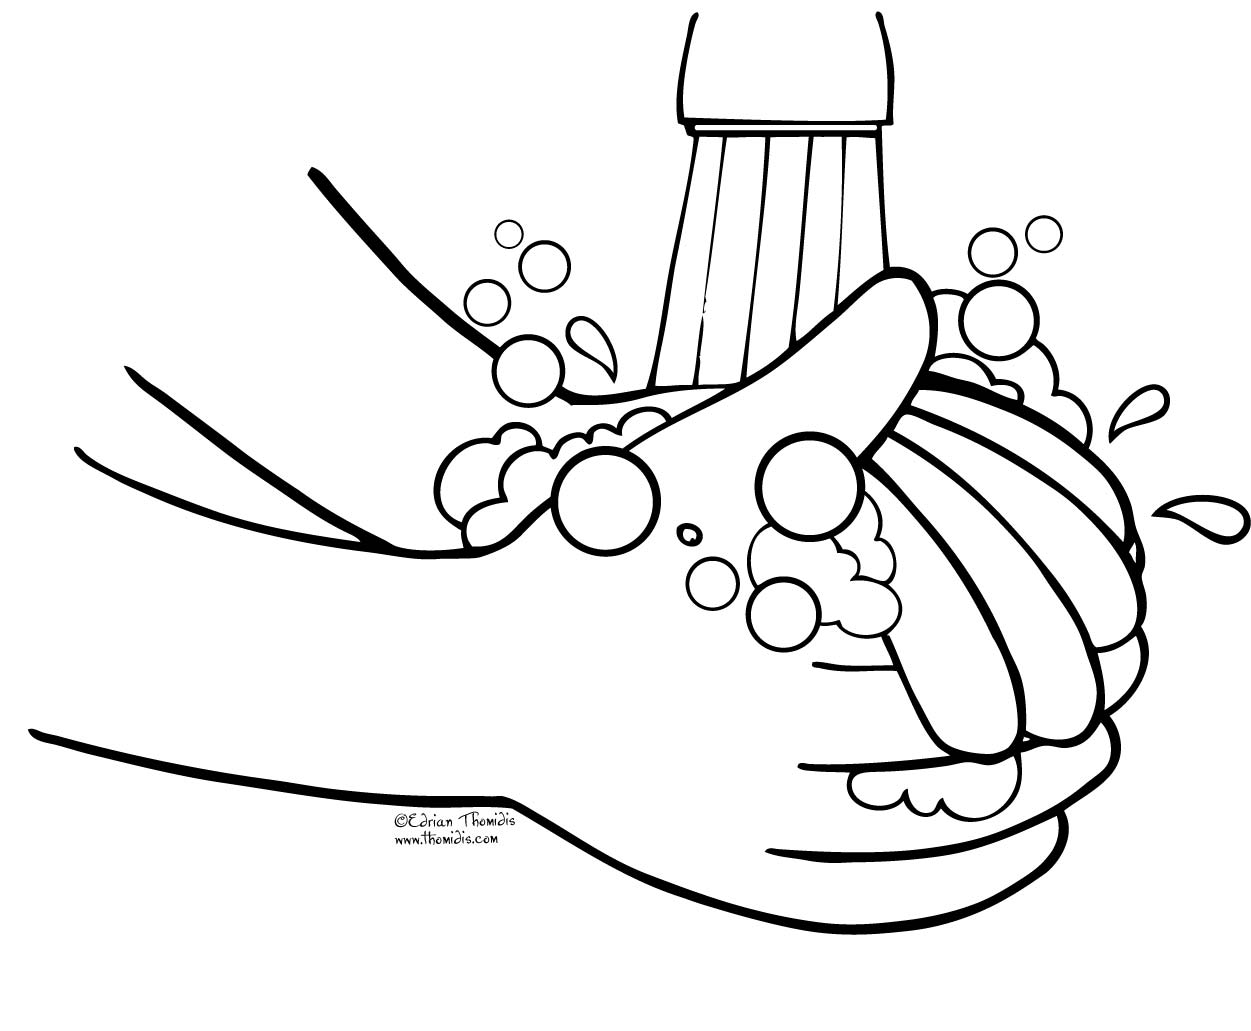 1251x1031 Hand Clipart Coloring Page Pencil And In Color Remarkable Helping